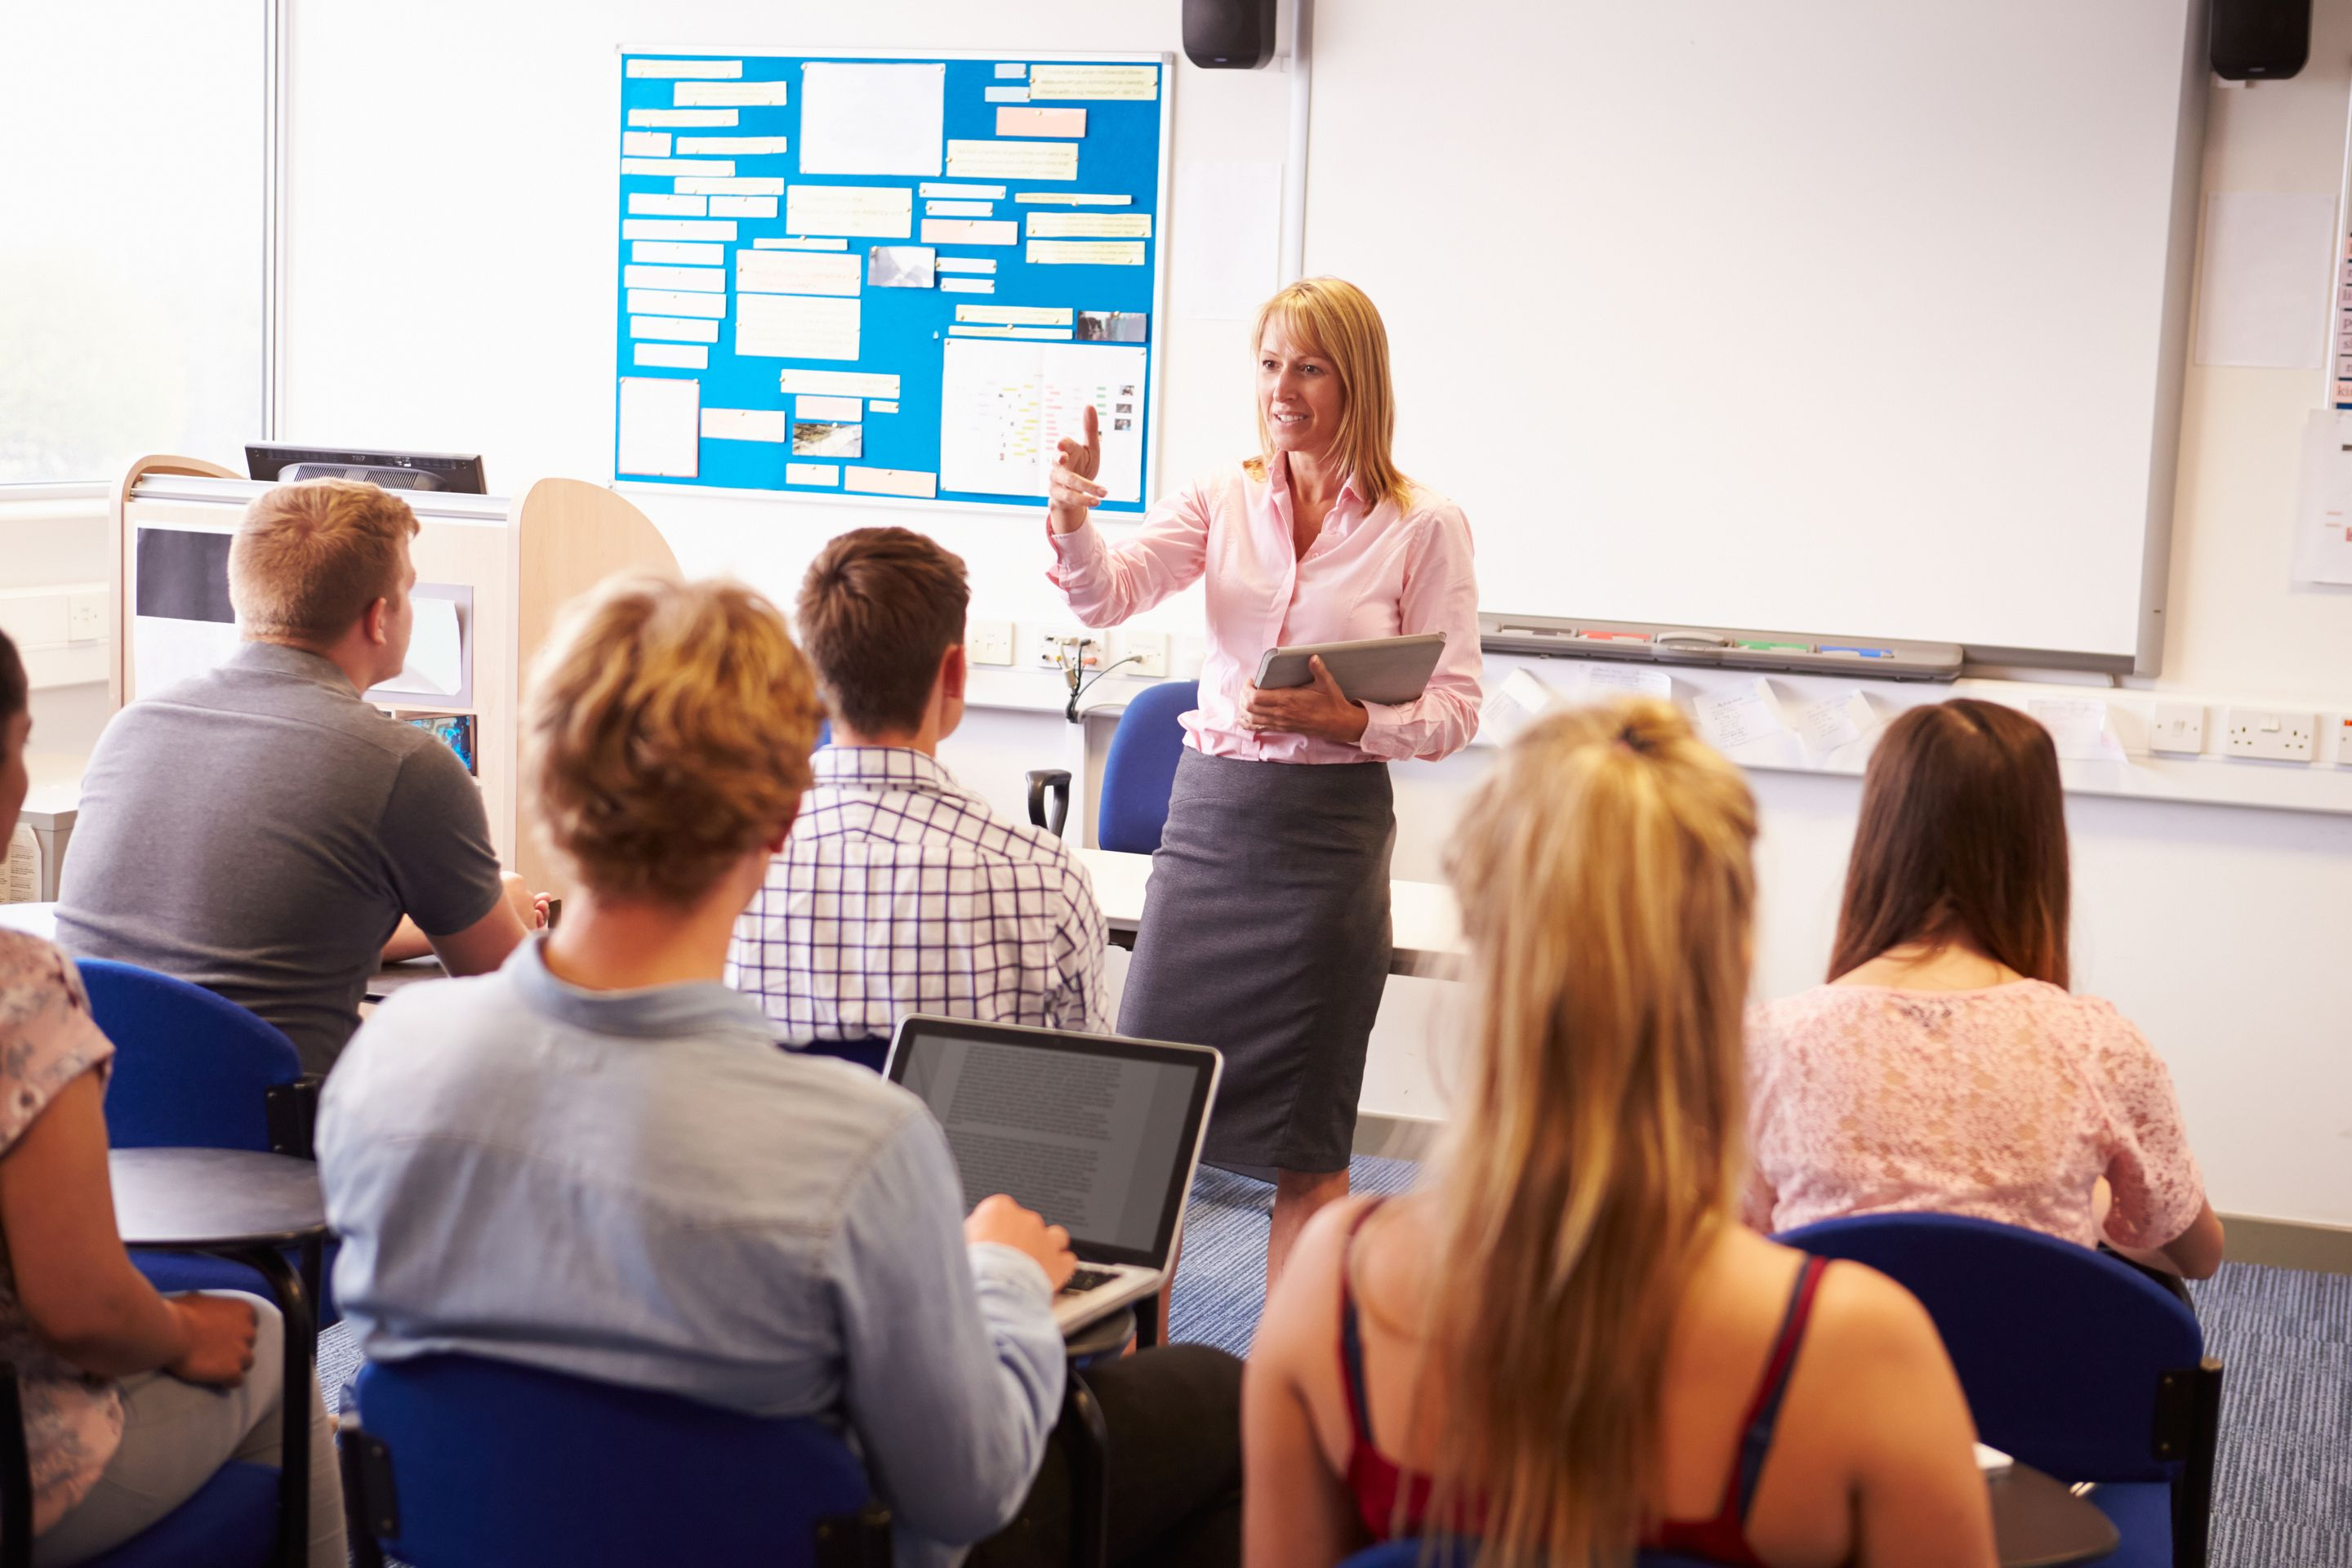 A teacher at the front of a classroom, responding to a student's question